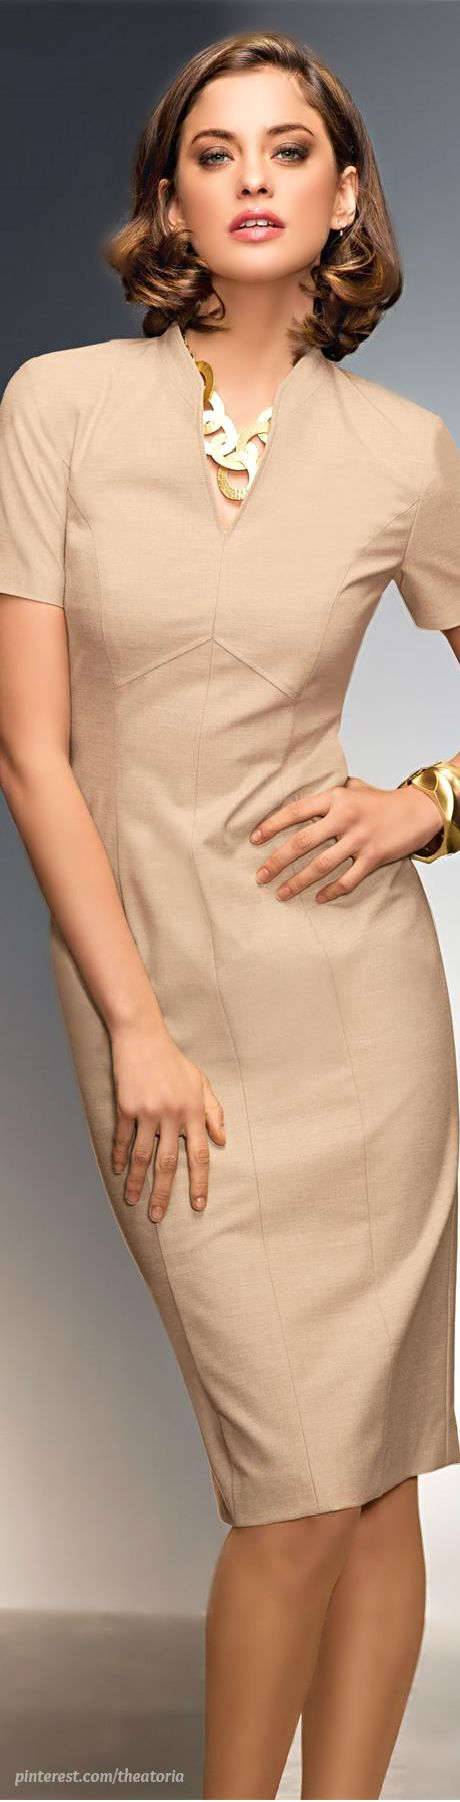 beige dress @roressclothes closet ideas women fashion outfit clothing style Madeleine: